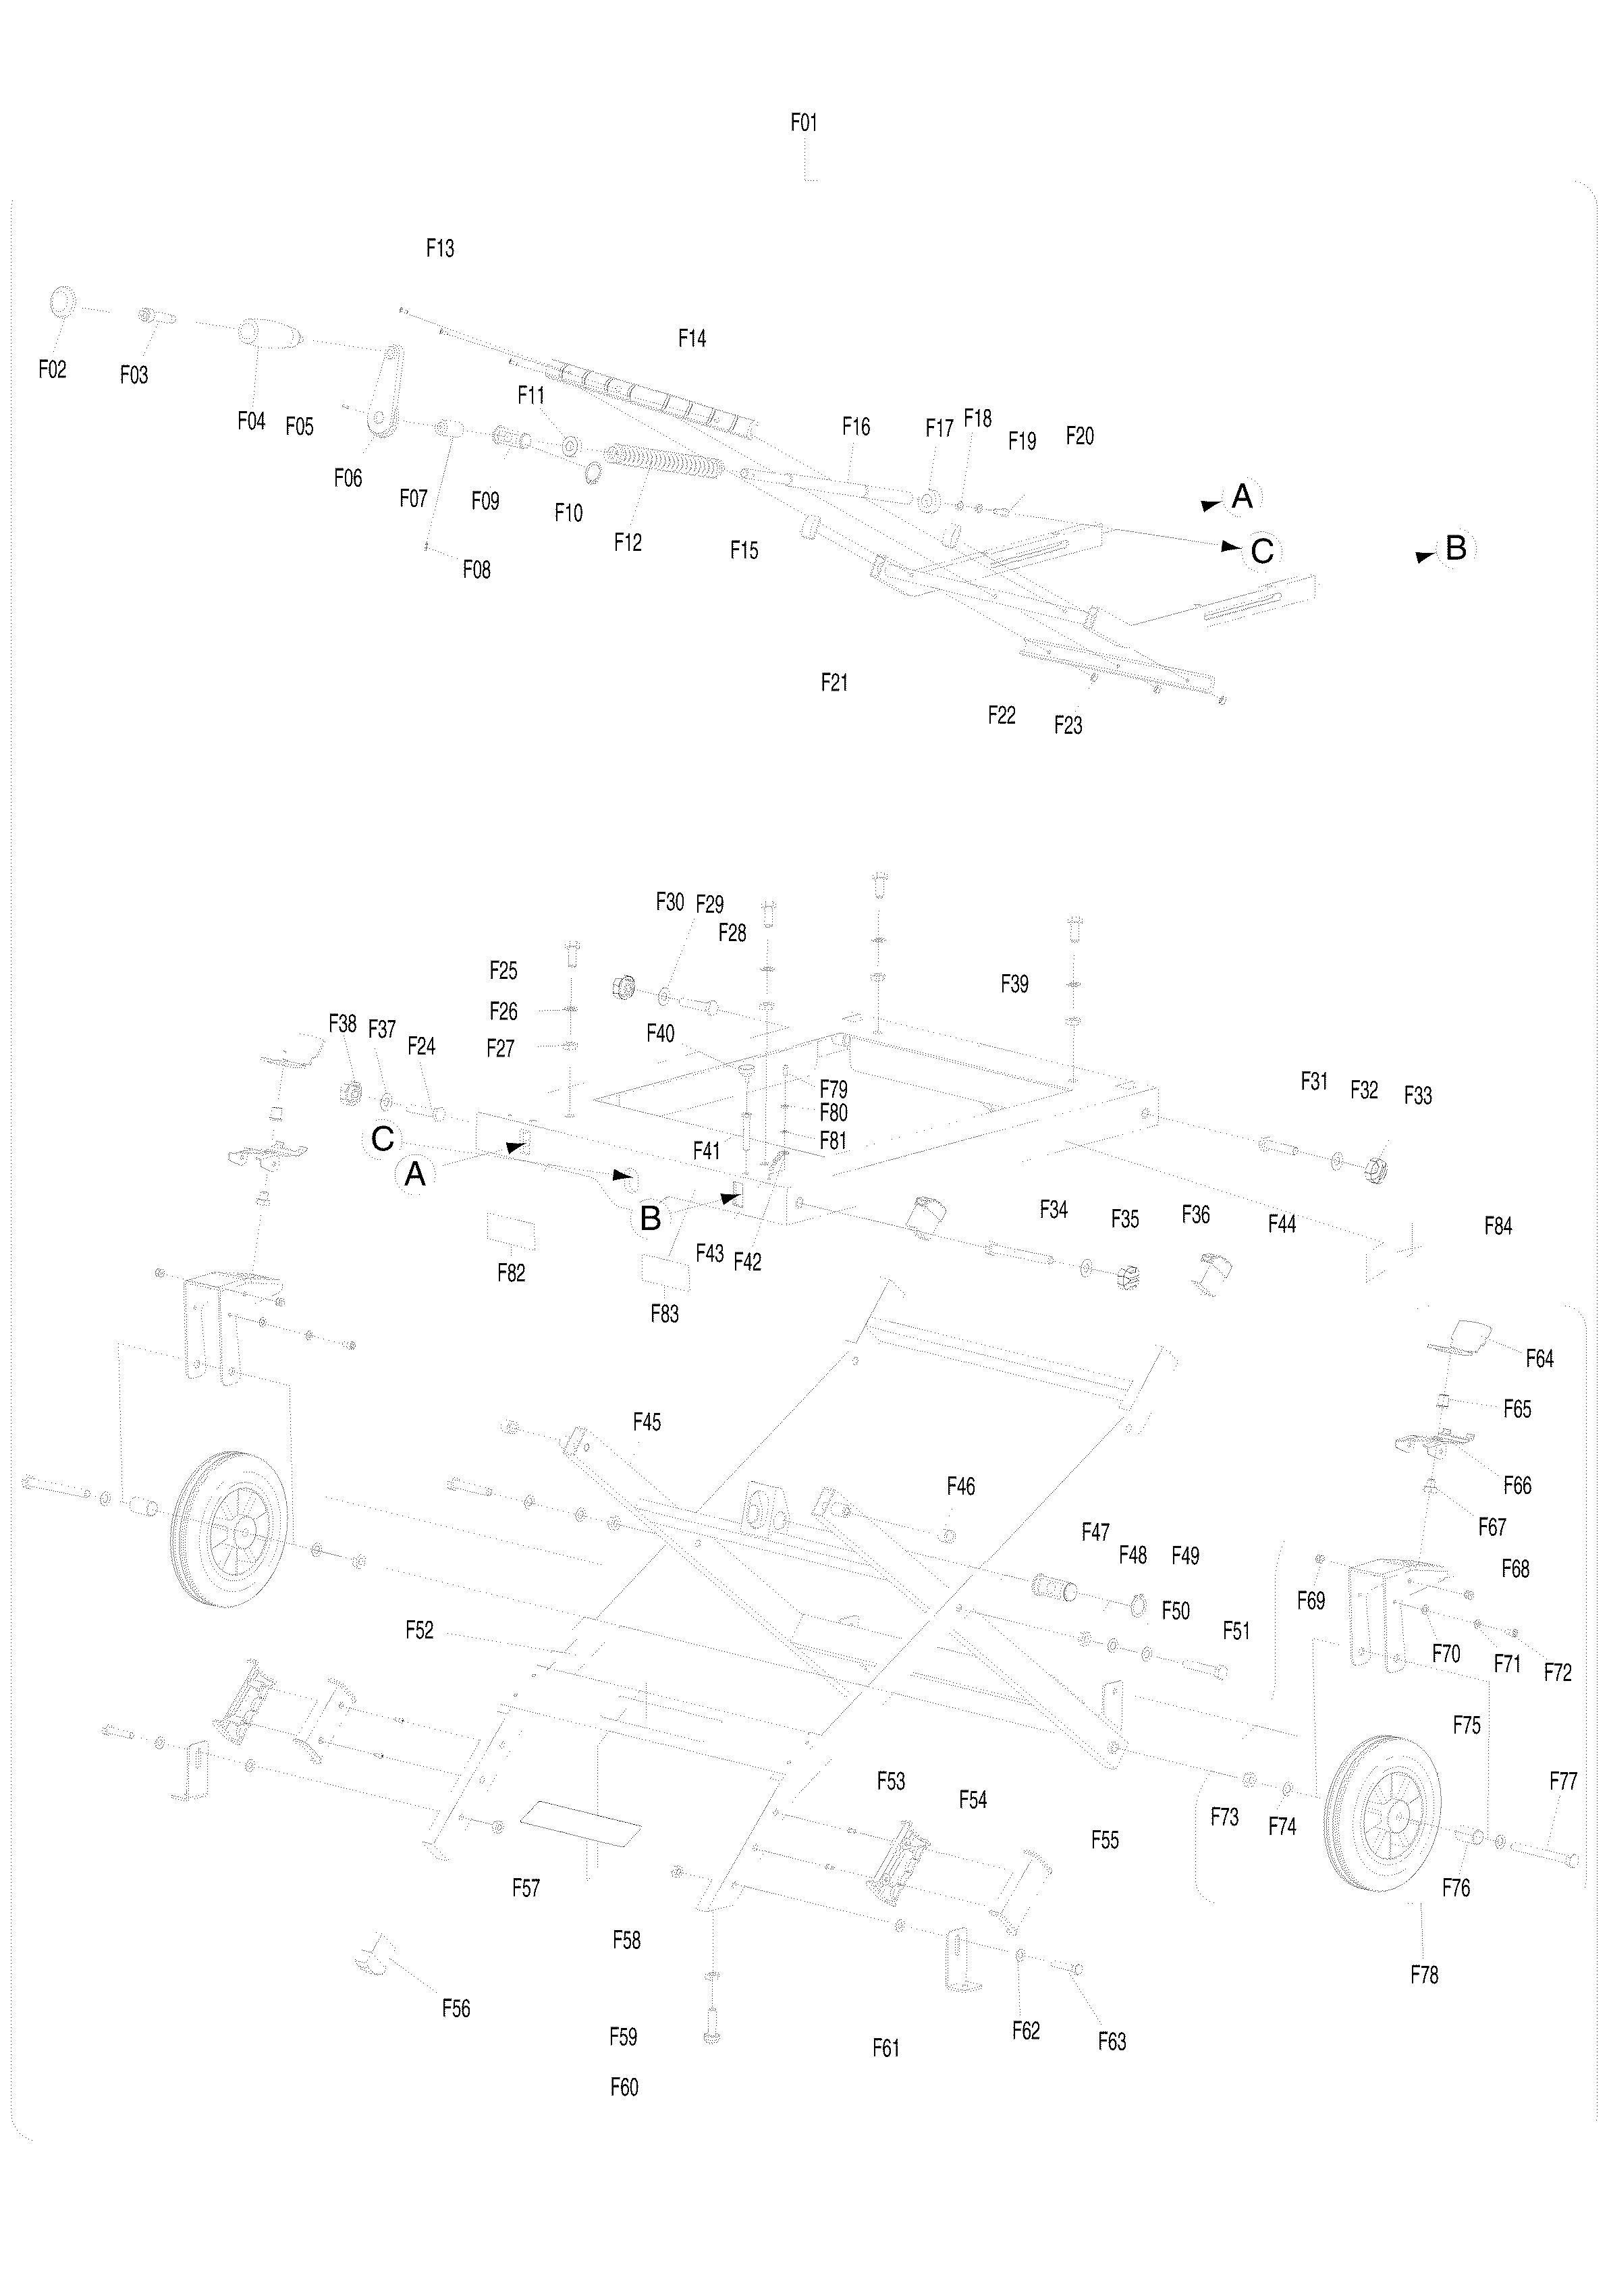 Makita mlt100 wiring diagram 28 wiring diagram images wiring mlt100ww6 spares for makita mlt100 table saw sparemlt100 from power tool centre makita mlt100 wiring diagram greentooth Image collections